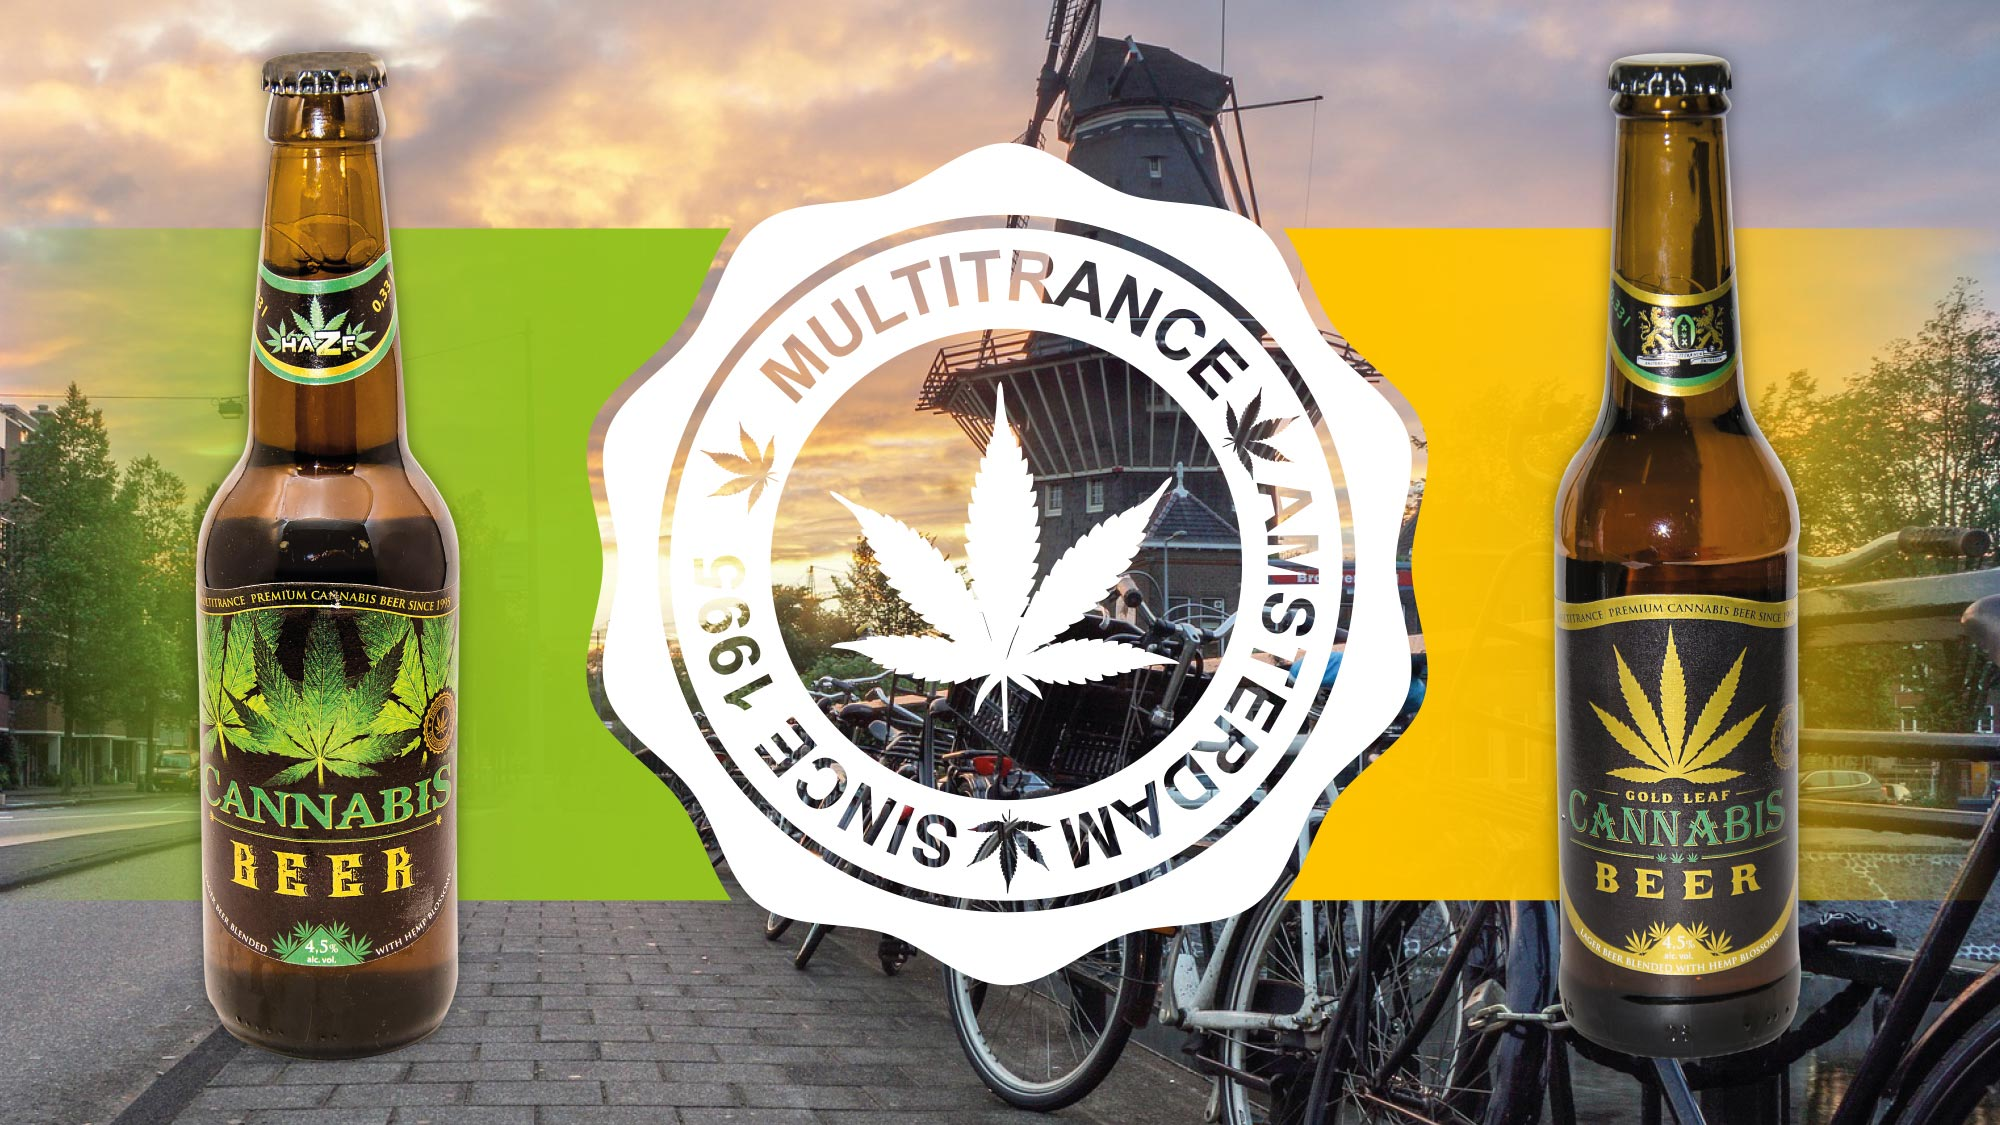 MultiTrance logo displayed in between cannabis infused beers with an image of Amsterdam in the background